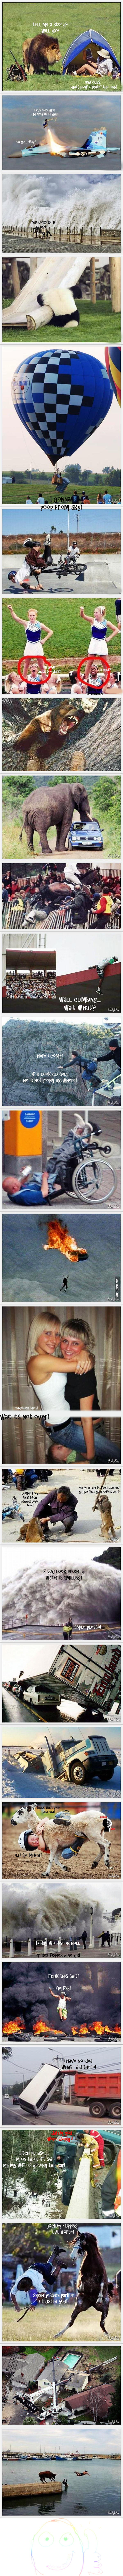 Epic fail is epic! :D